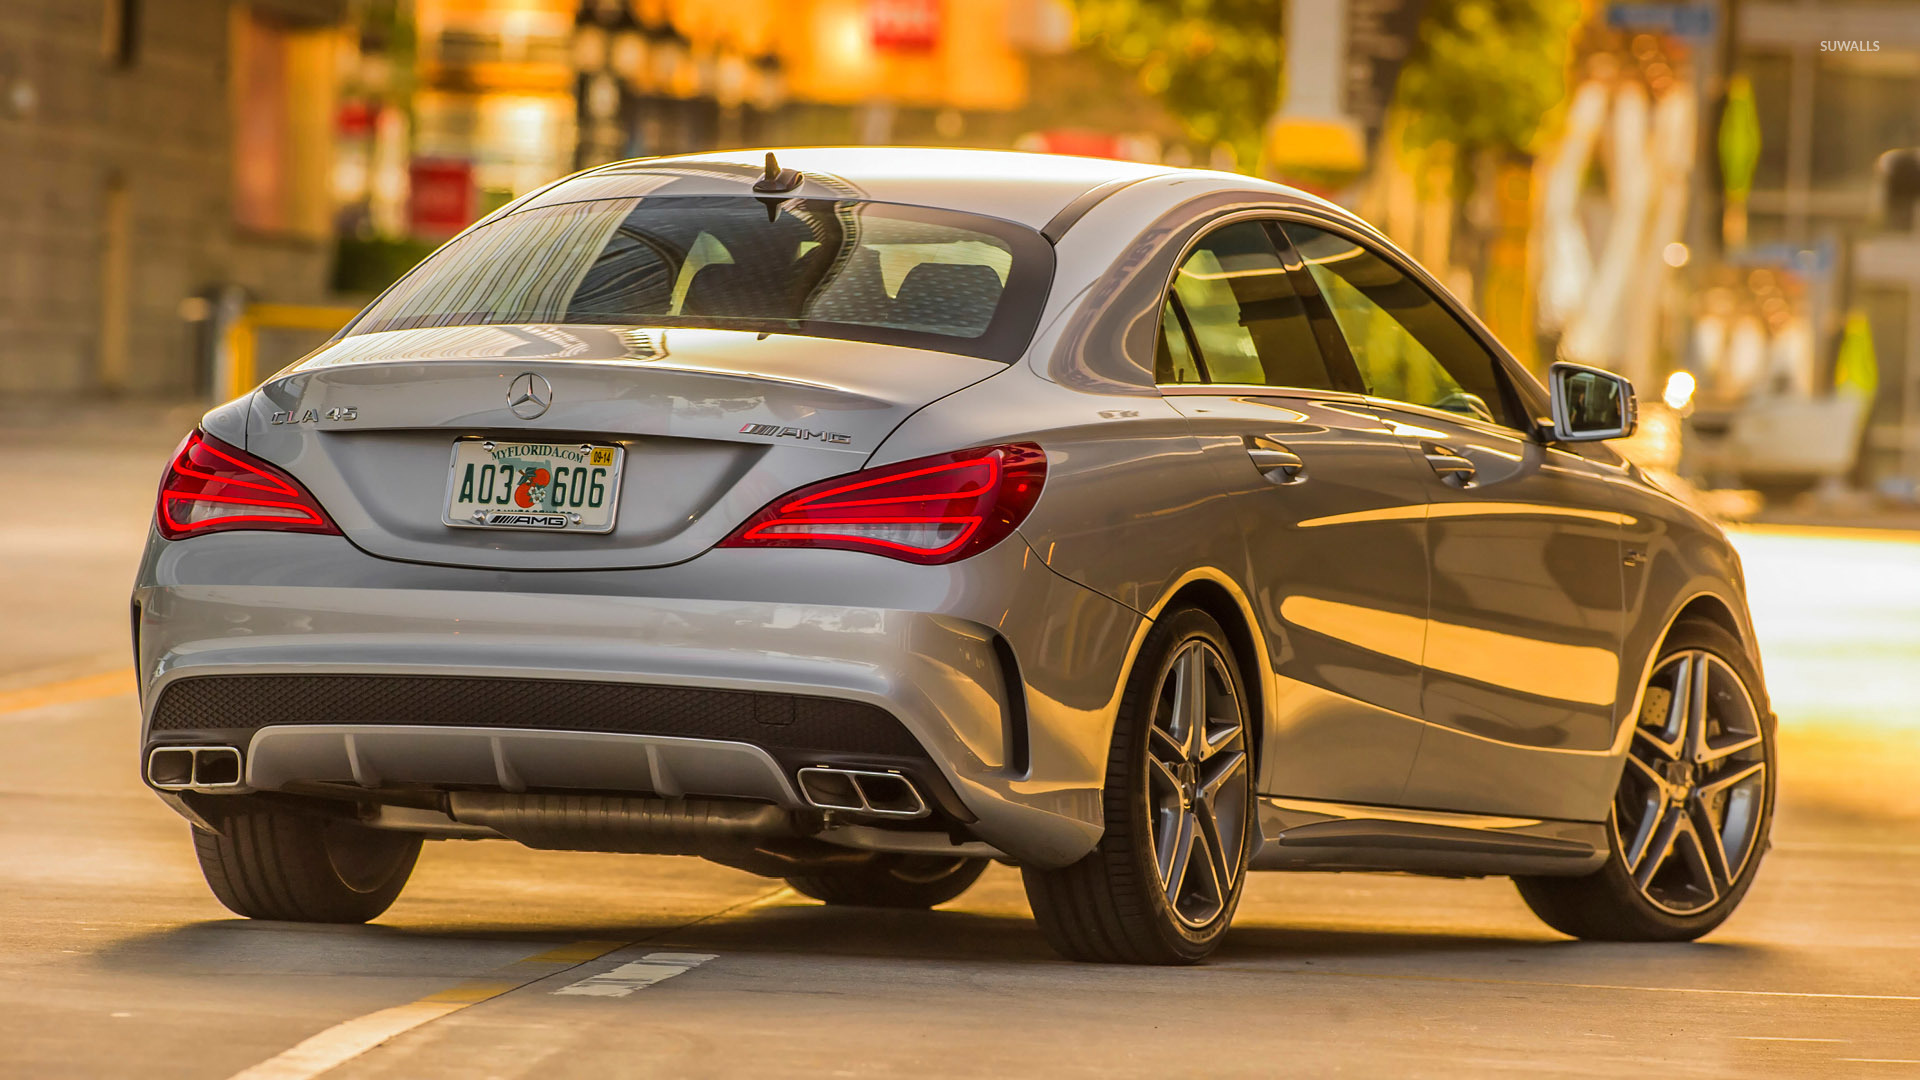 Silver Mercedes Benz Cla 45 Amg Back View Wallpaper Car